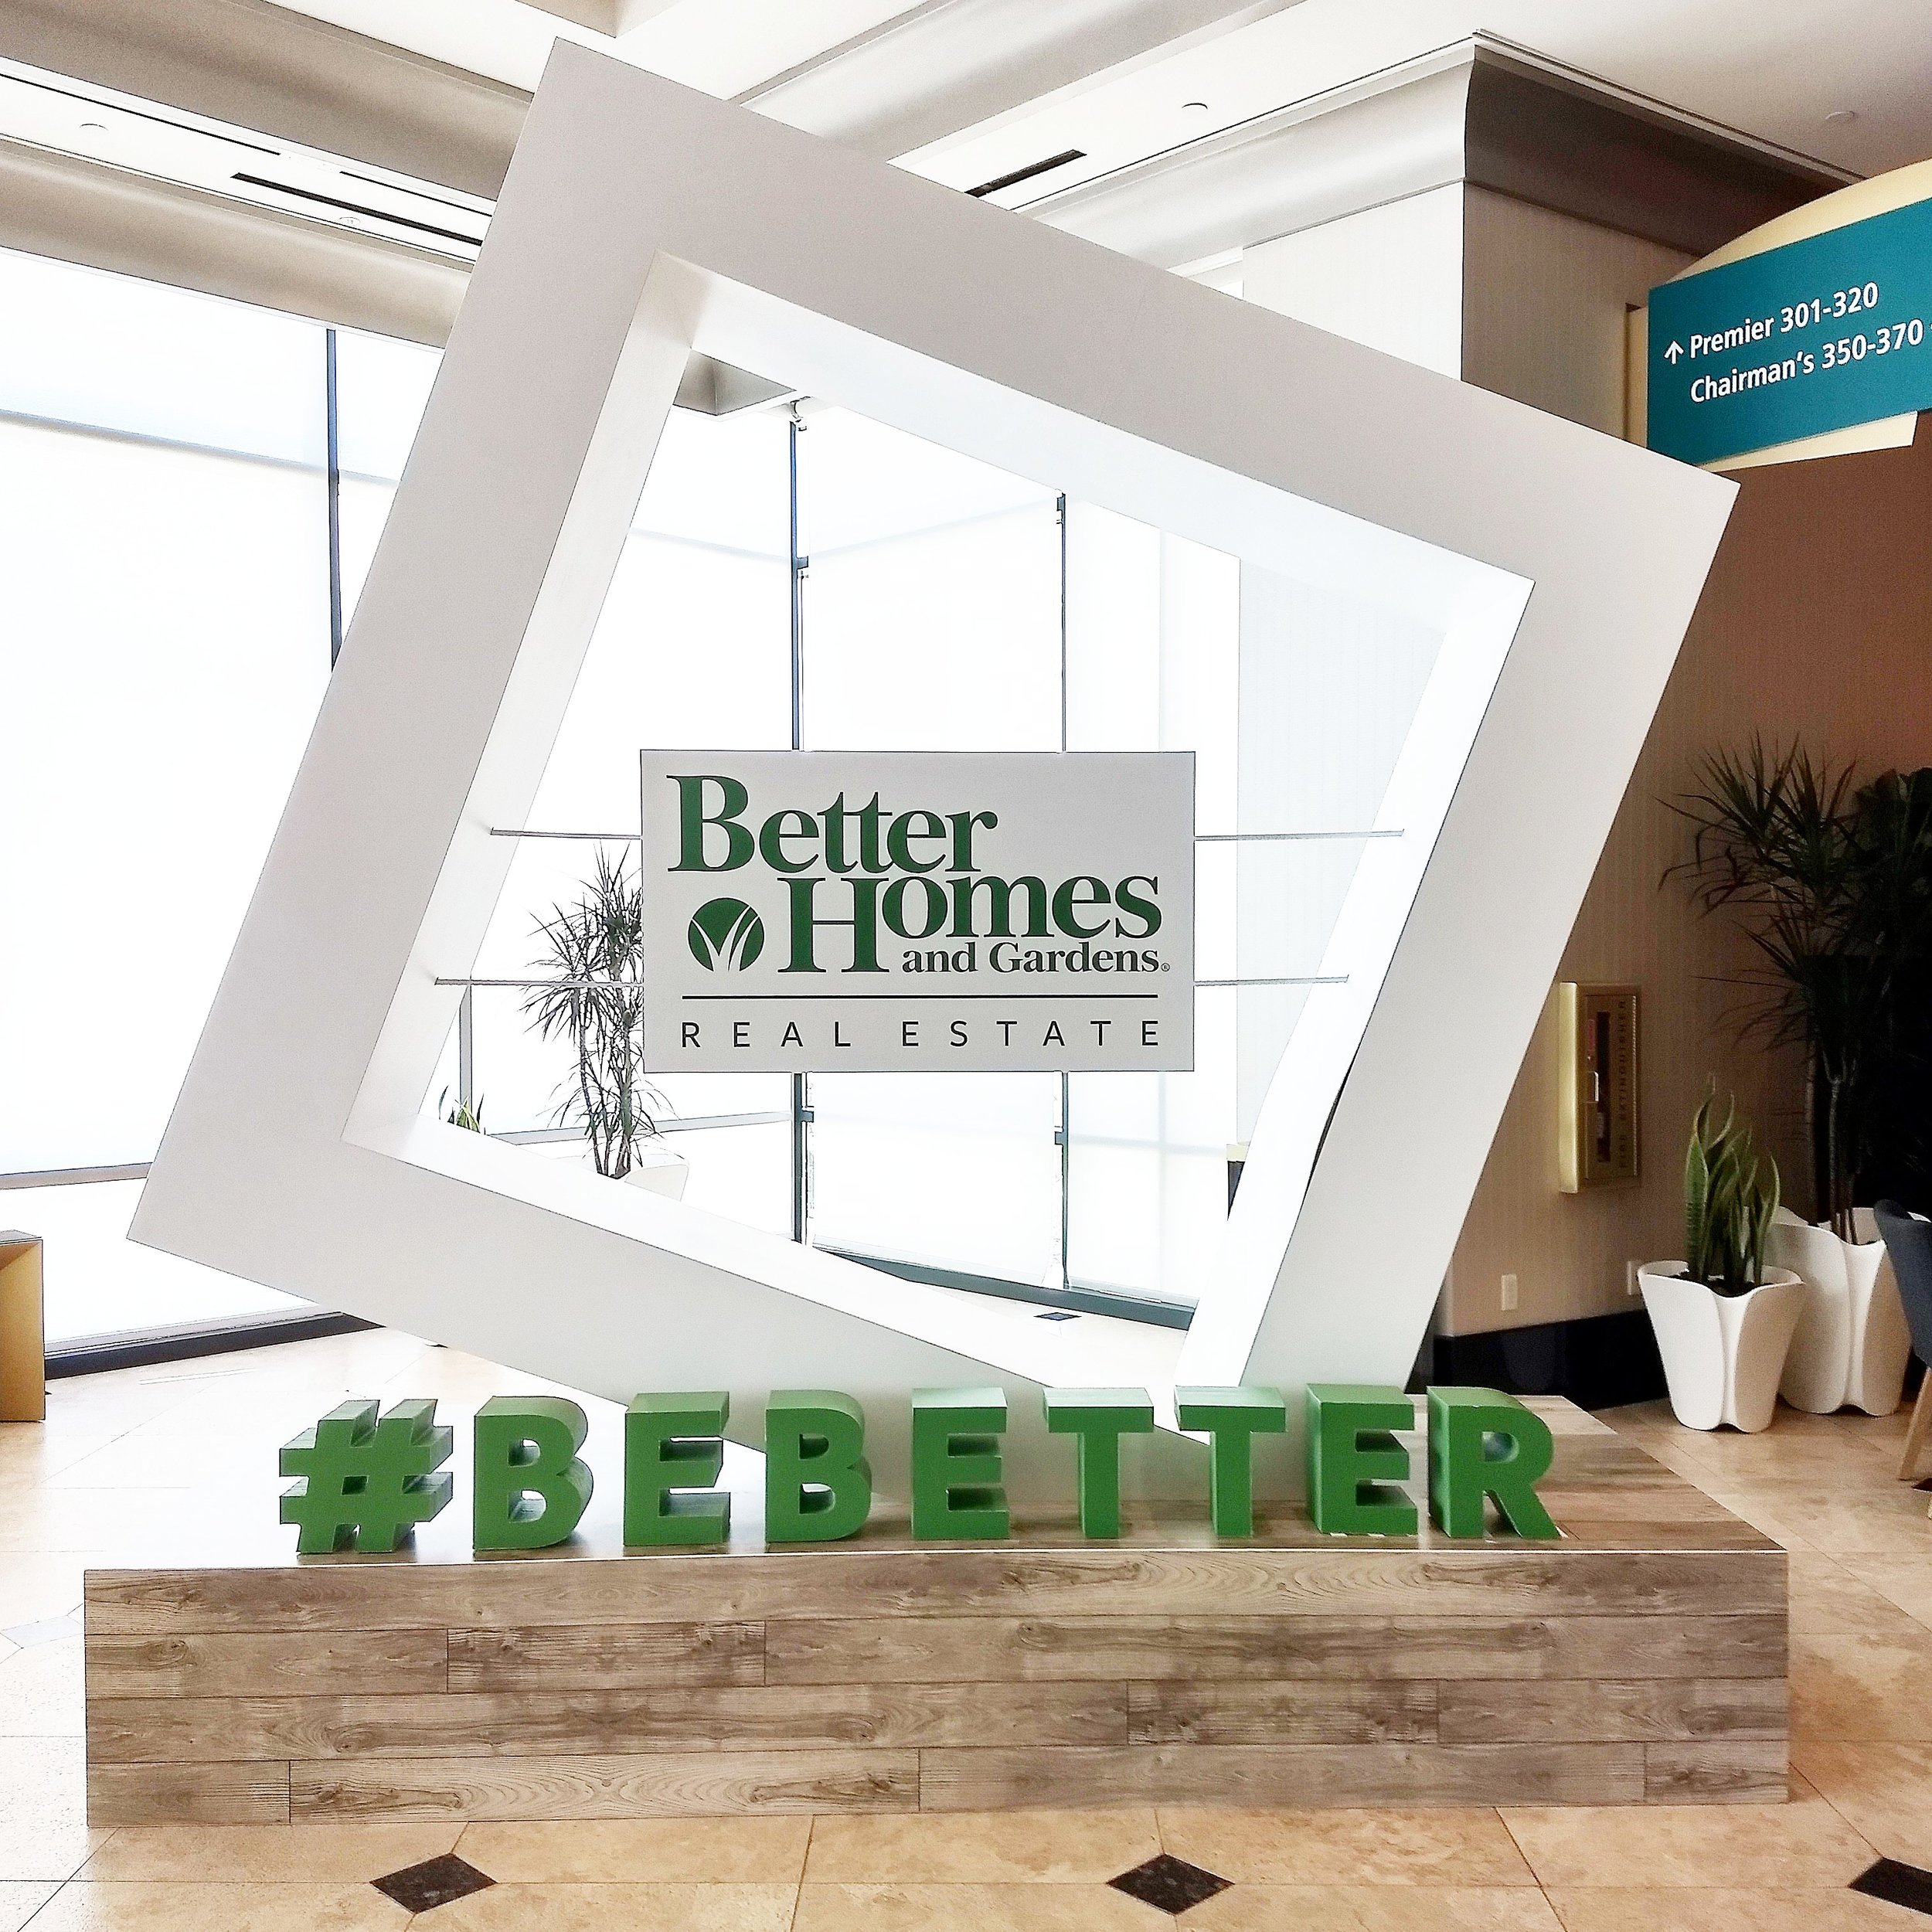 FUSION 2019 - Better Homes & Gardens Real Estate 43° North. Be Better.